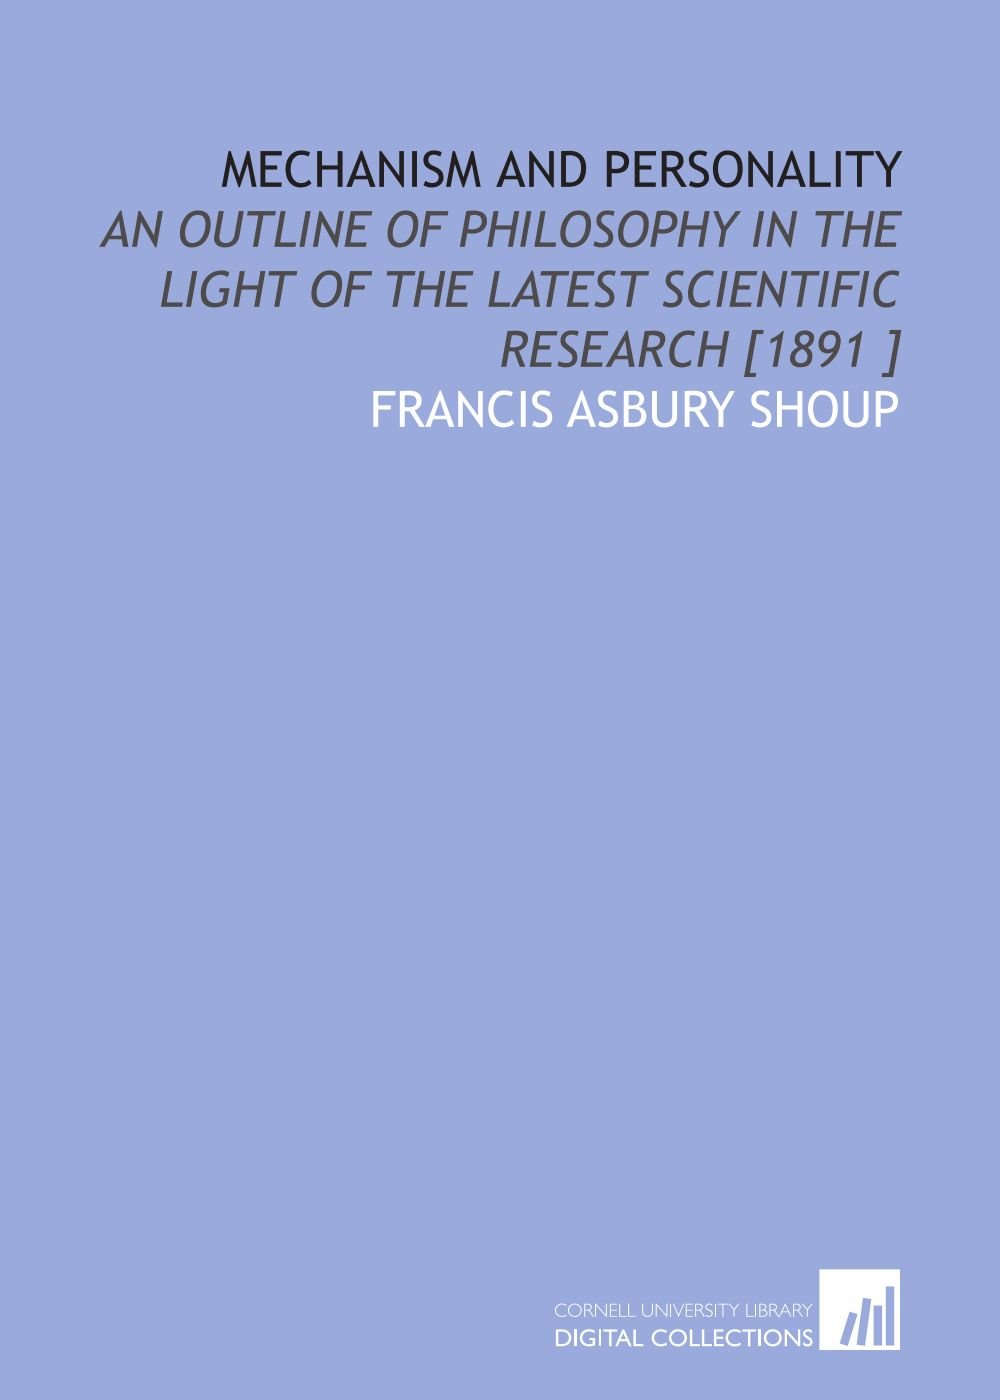 Download Mechanism and Personality: An Outline of Philosophy in the Light of the Latest Scientific Research [1891 ] PDF